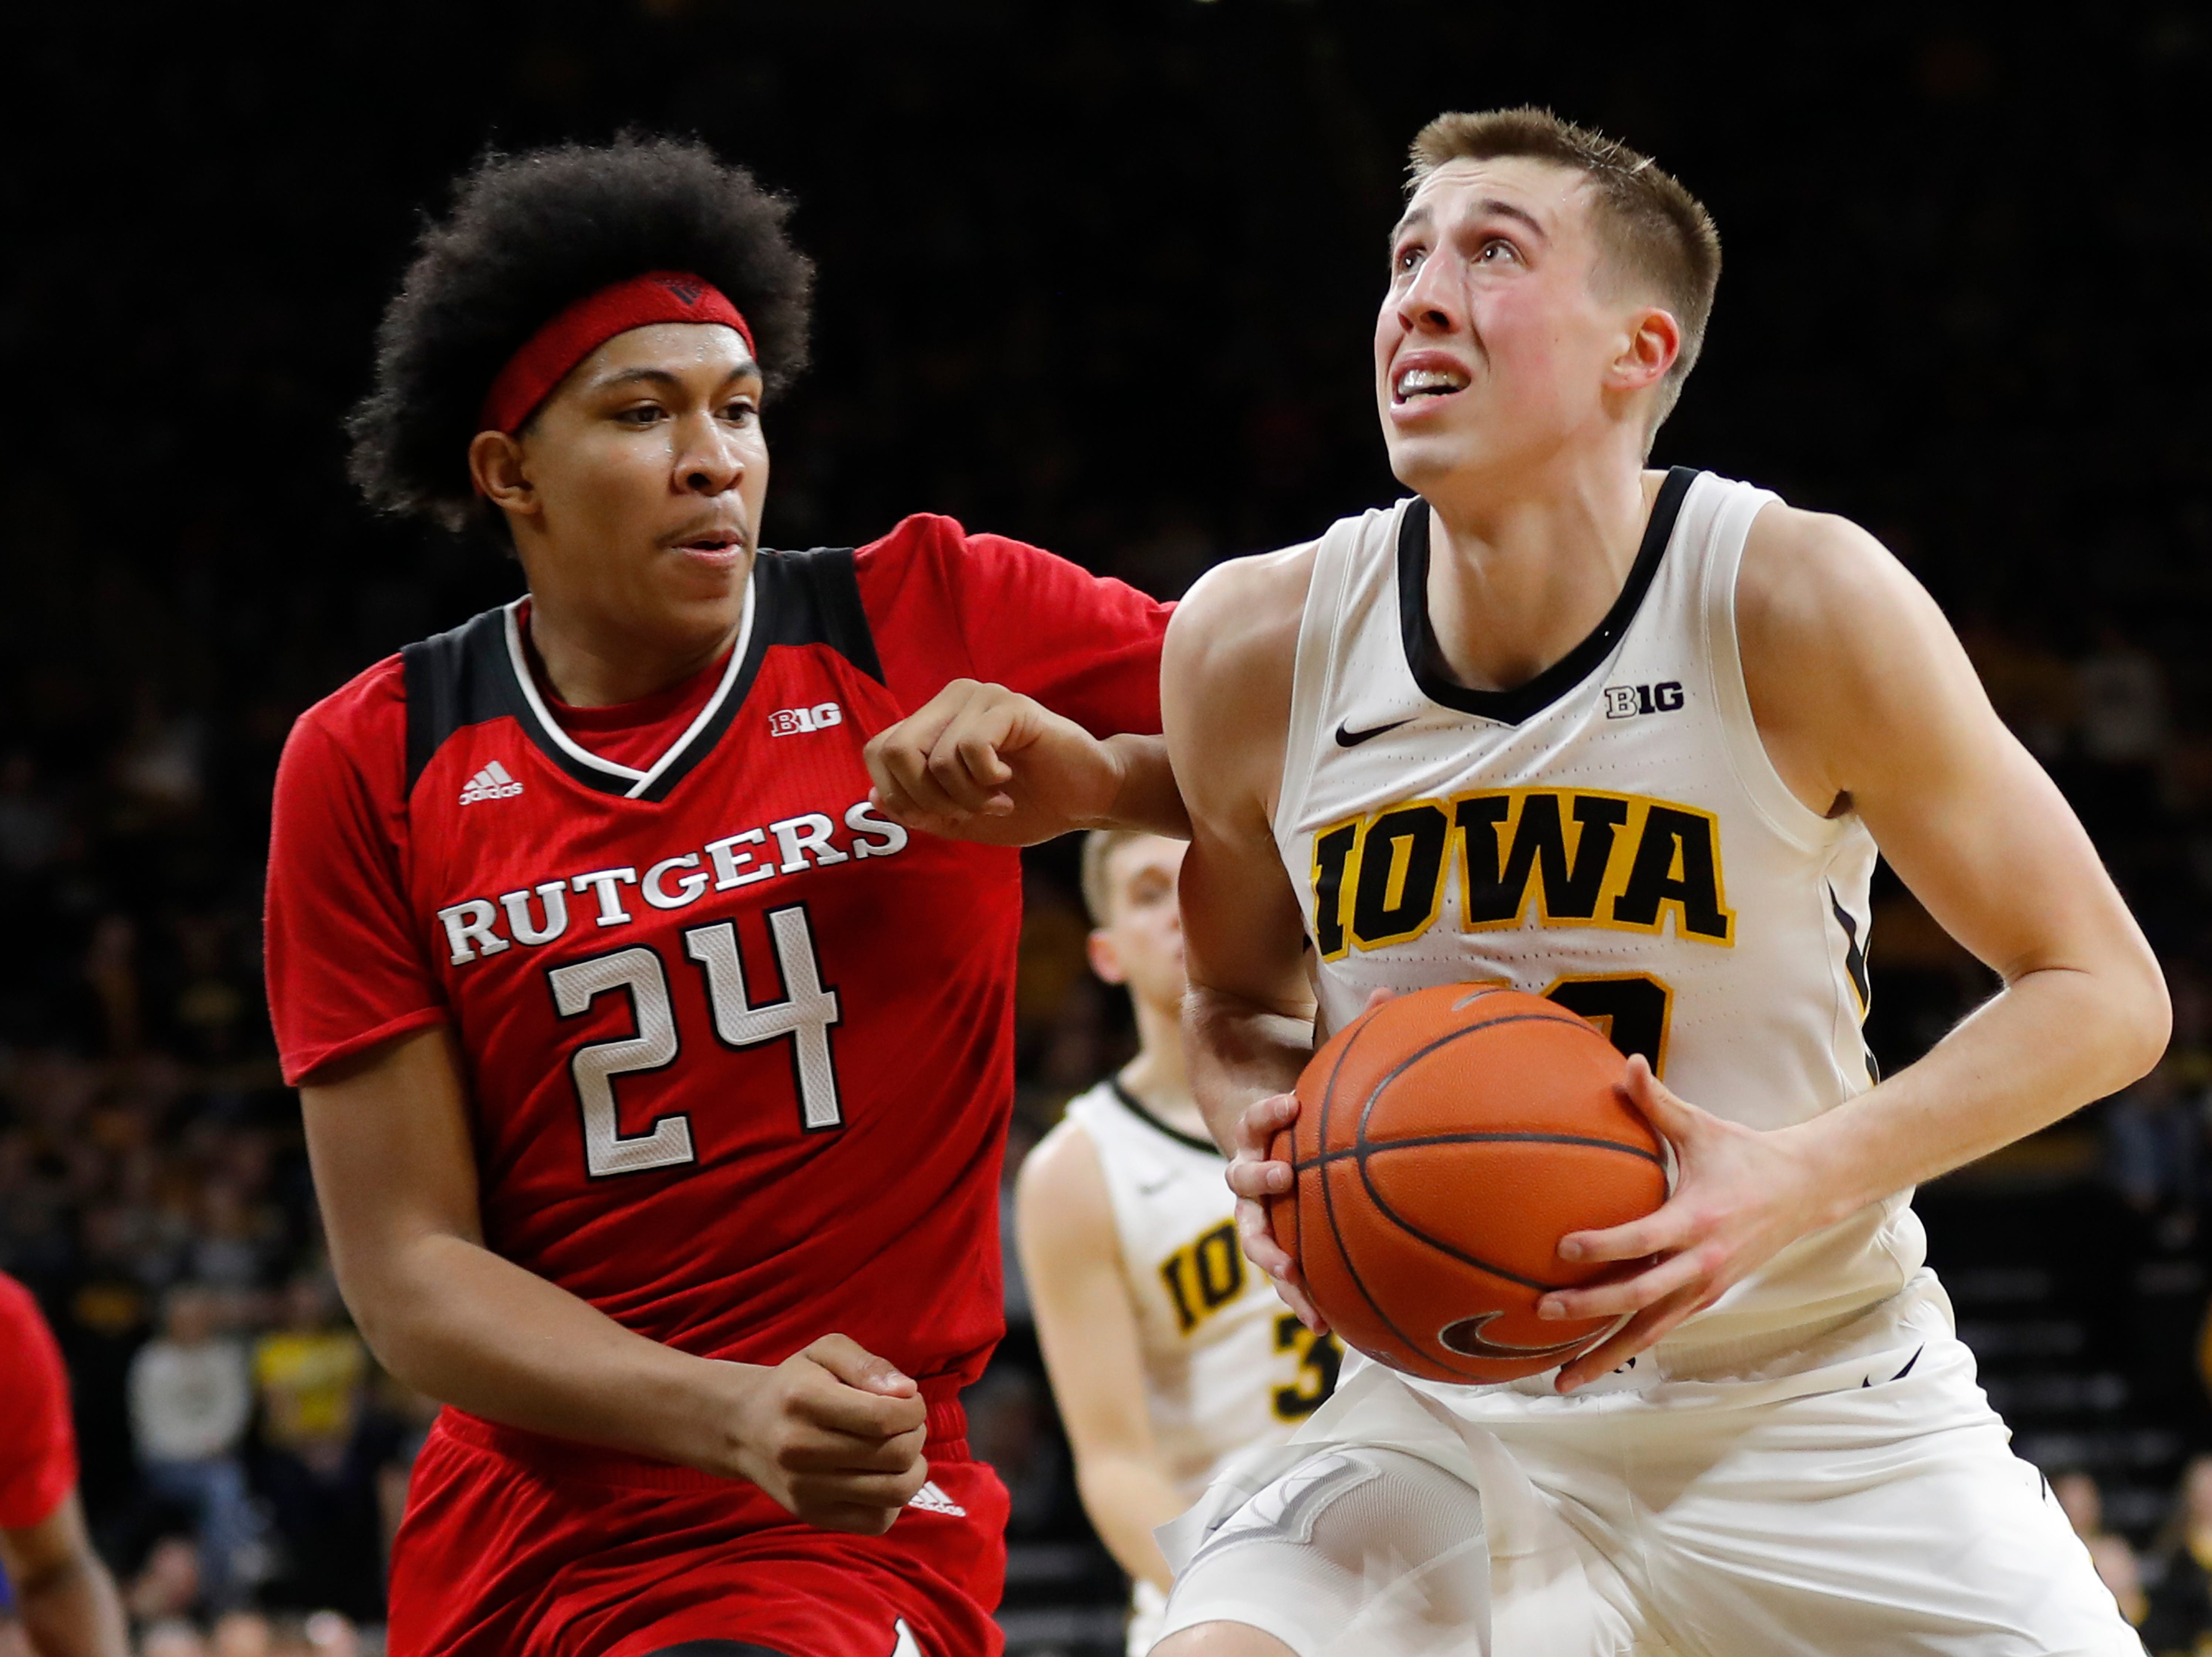 7. Iowa (21-8, 10-8) – It's been a tumultuous week for the Hawkeyes with two straight losses, the first that included a rant from coach Fran McCaffery that garnered a two-game suspension and the second a one-sided defeat at home at the hands of Rutgers. Two road games await in the final week – at Wisconsin and Nebraska – as the Hawkeyes try to right the ship before heading to the Big Ten tournament. Last week: 6.